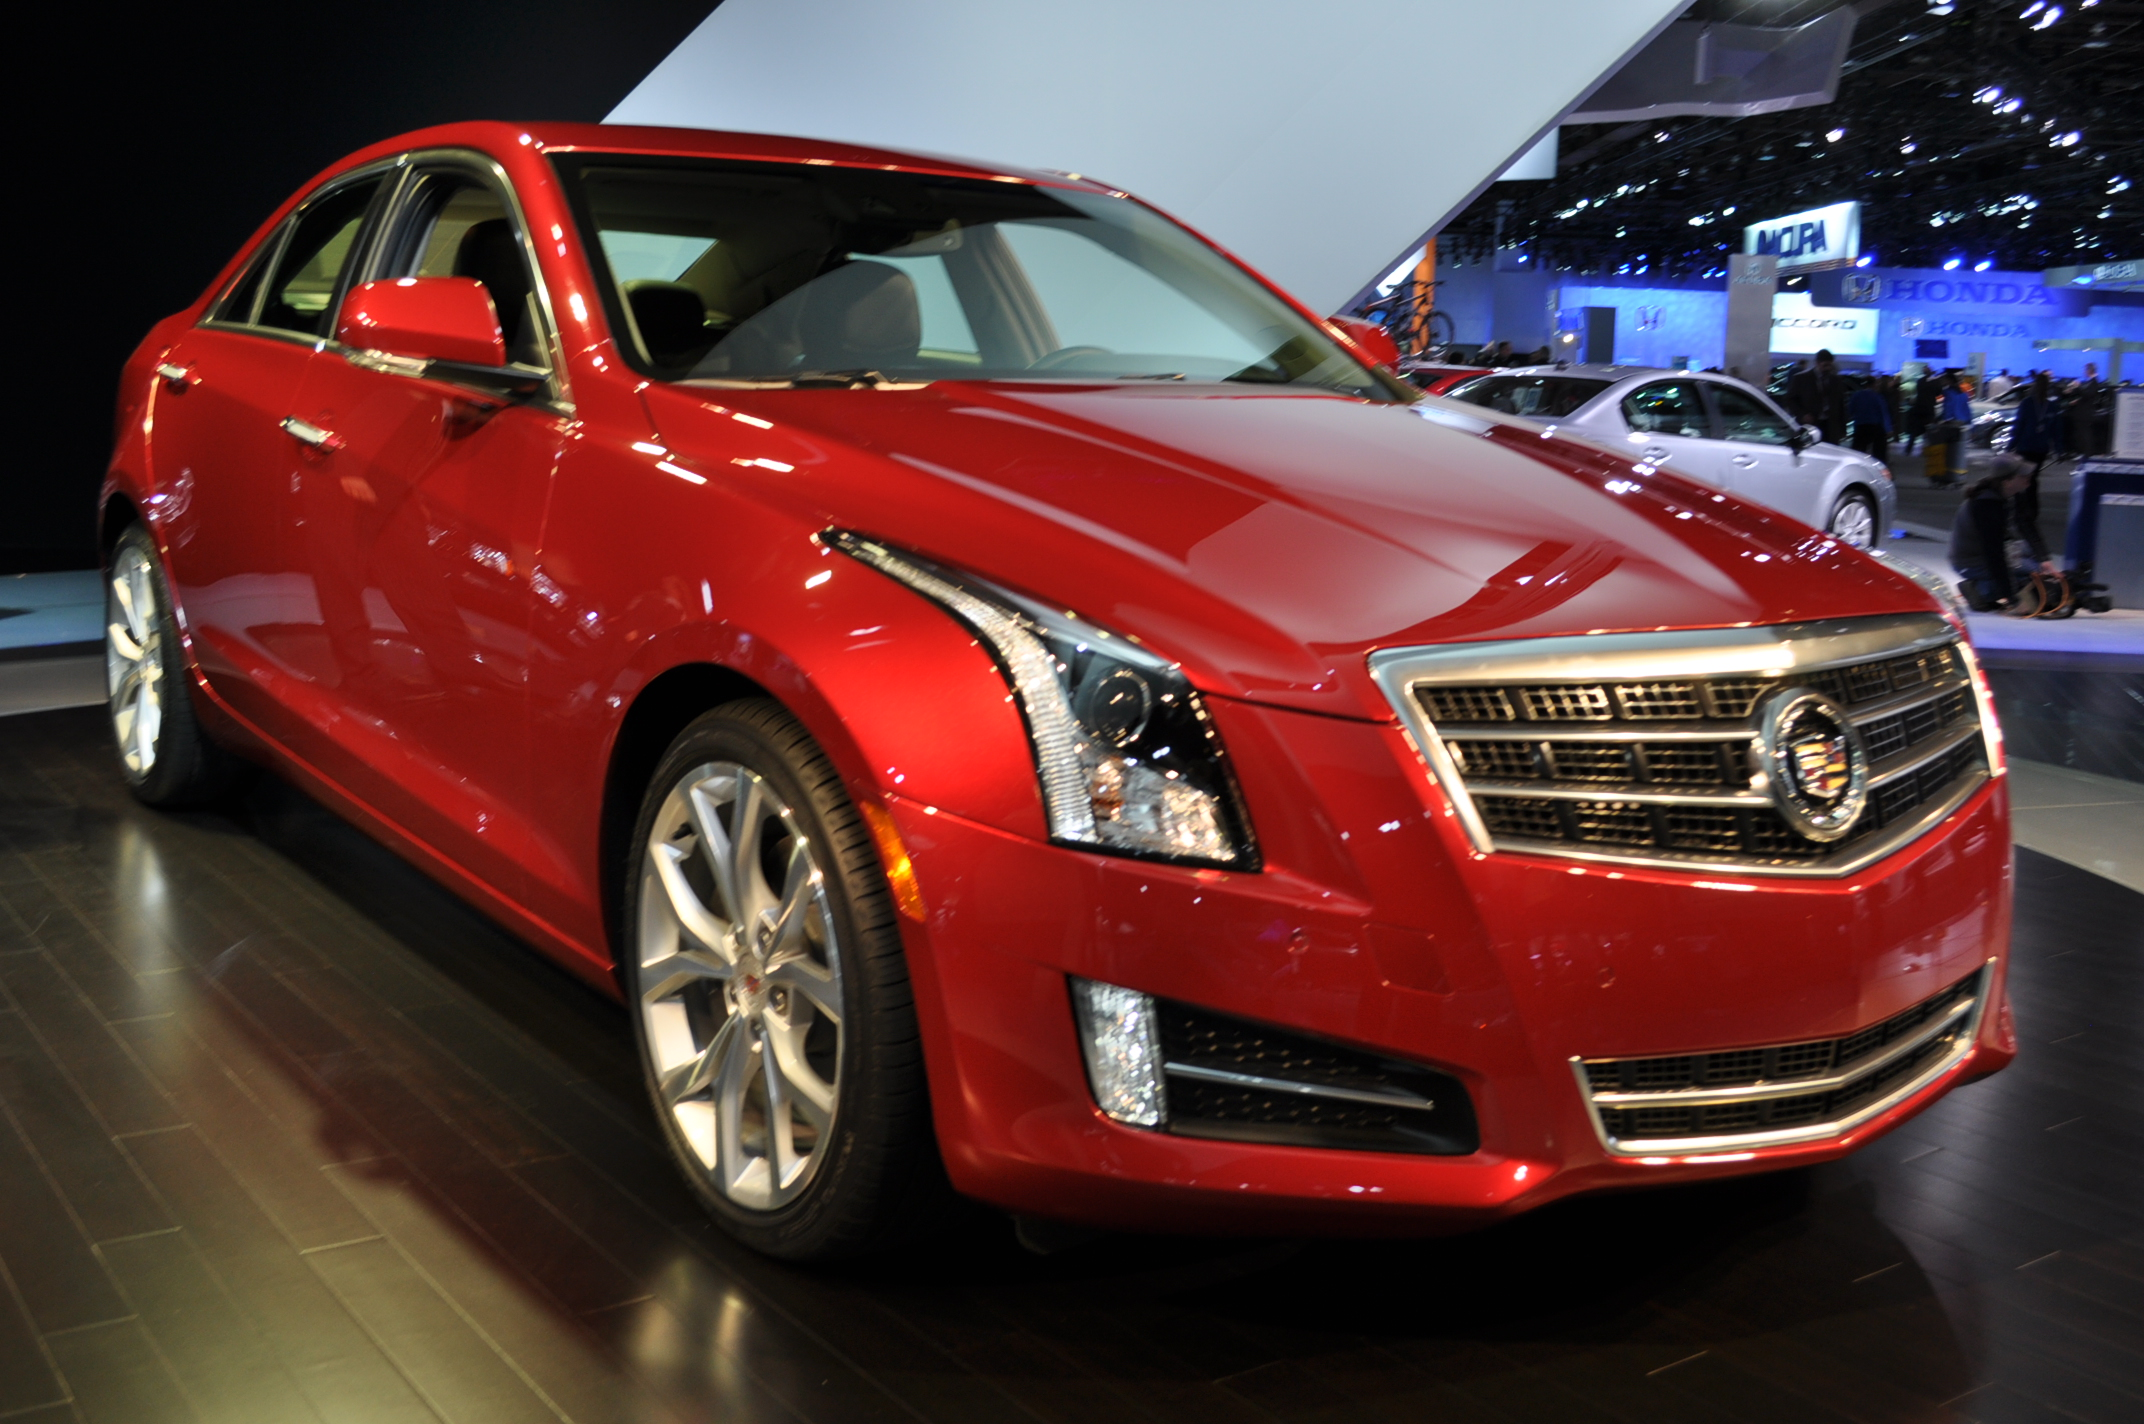 Audi 0 60 >> 2013 Cadillac ATS: 0-60 MPH In 5.4 Seconds